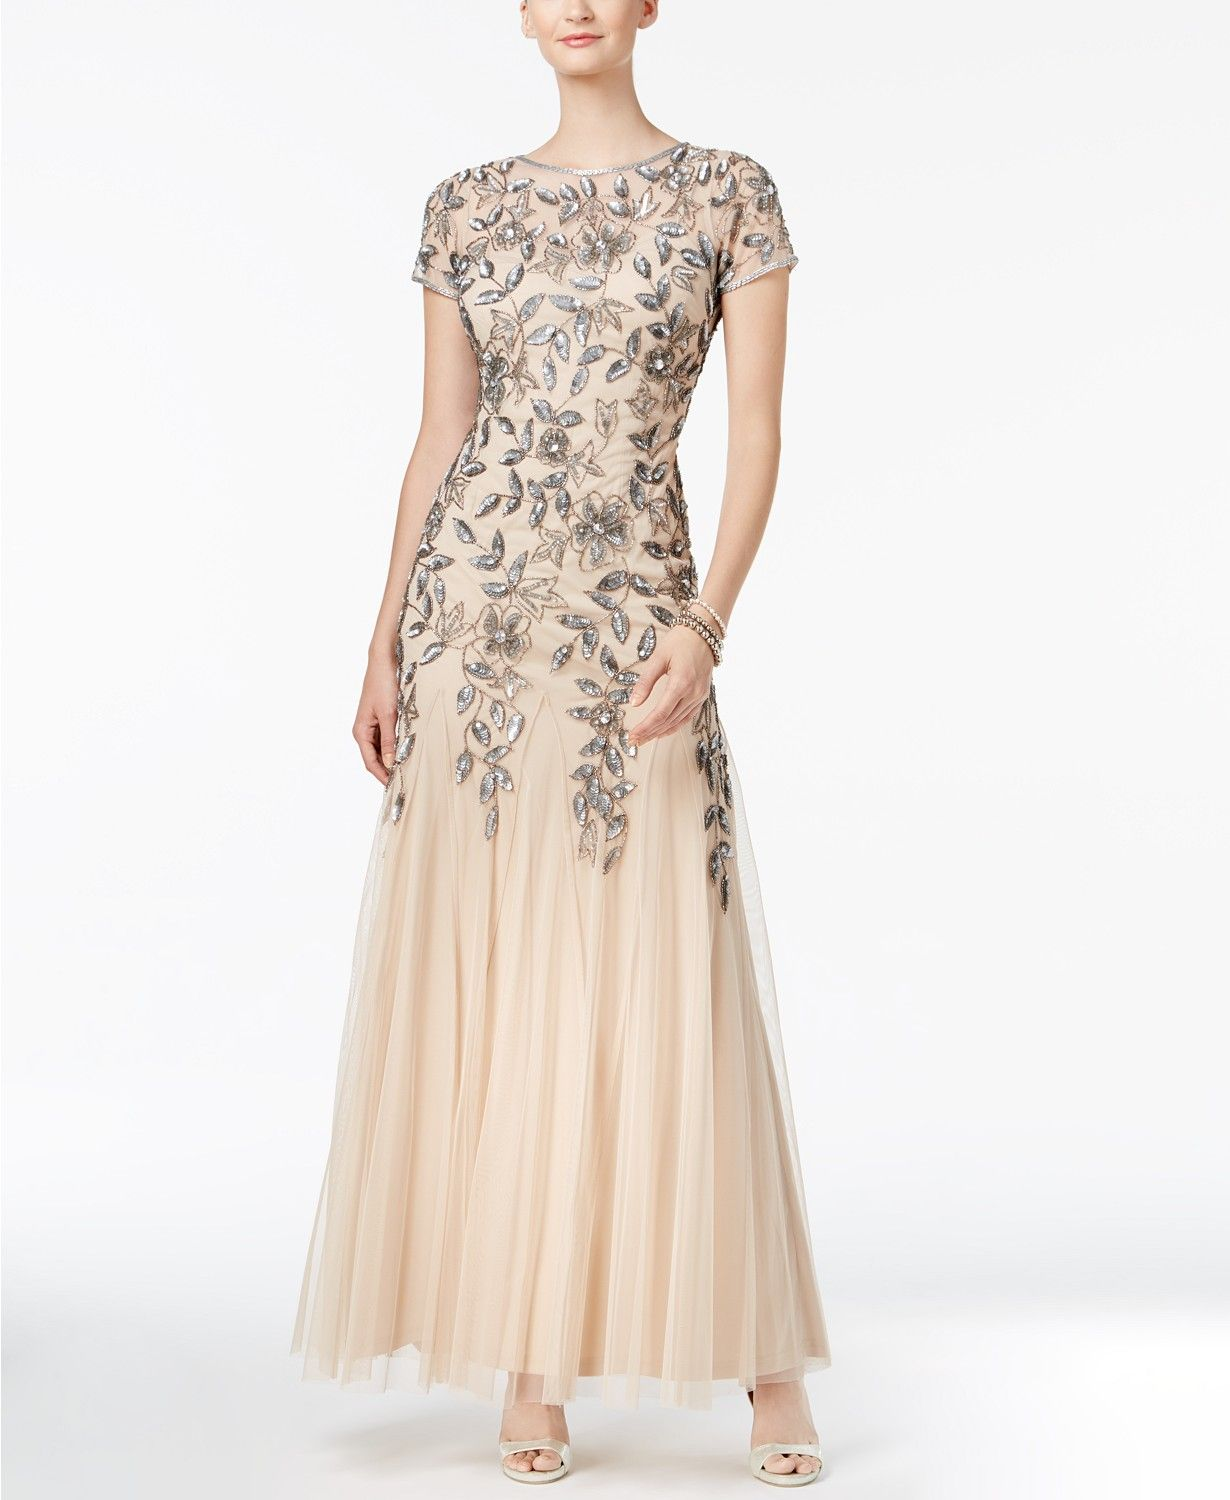 Adrianna Papell Floral Beaded Gown Reviews Dresses Women Macy S In 2020 Beaded Gown Mother Of Groom Dresses Petite Evening Gowns